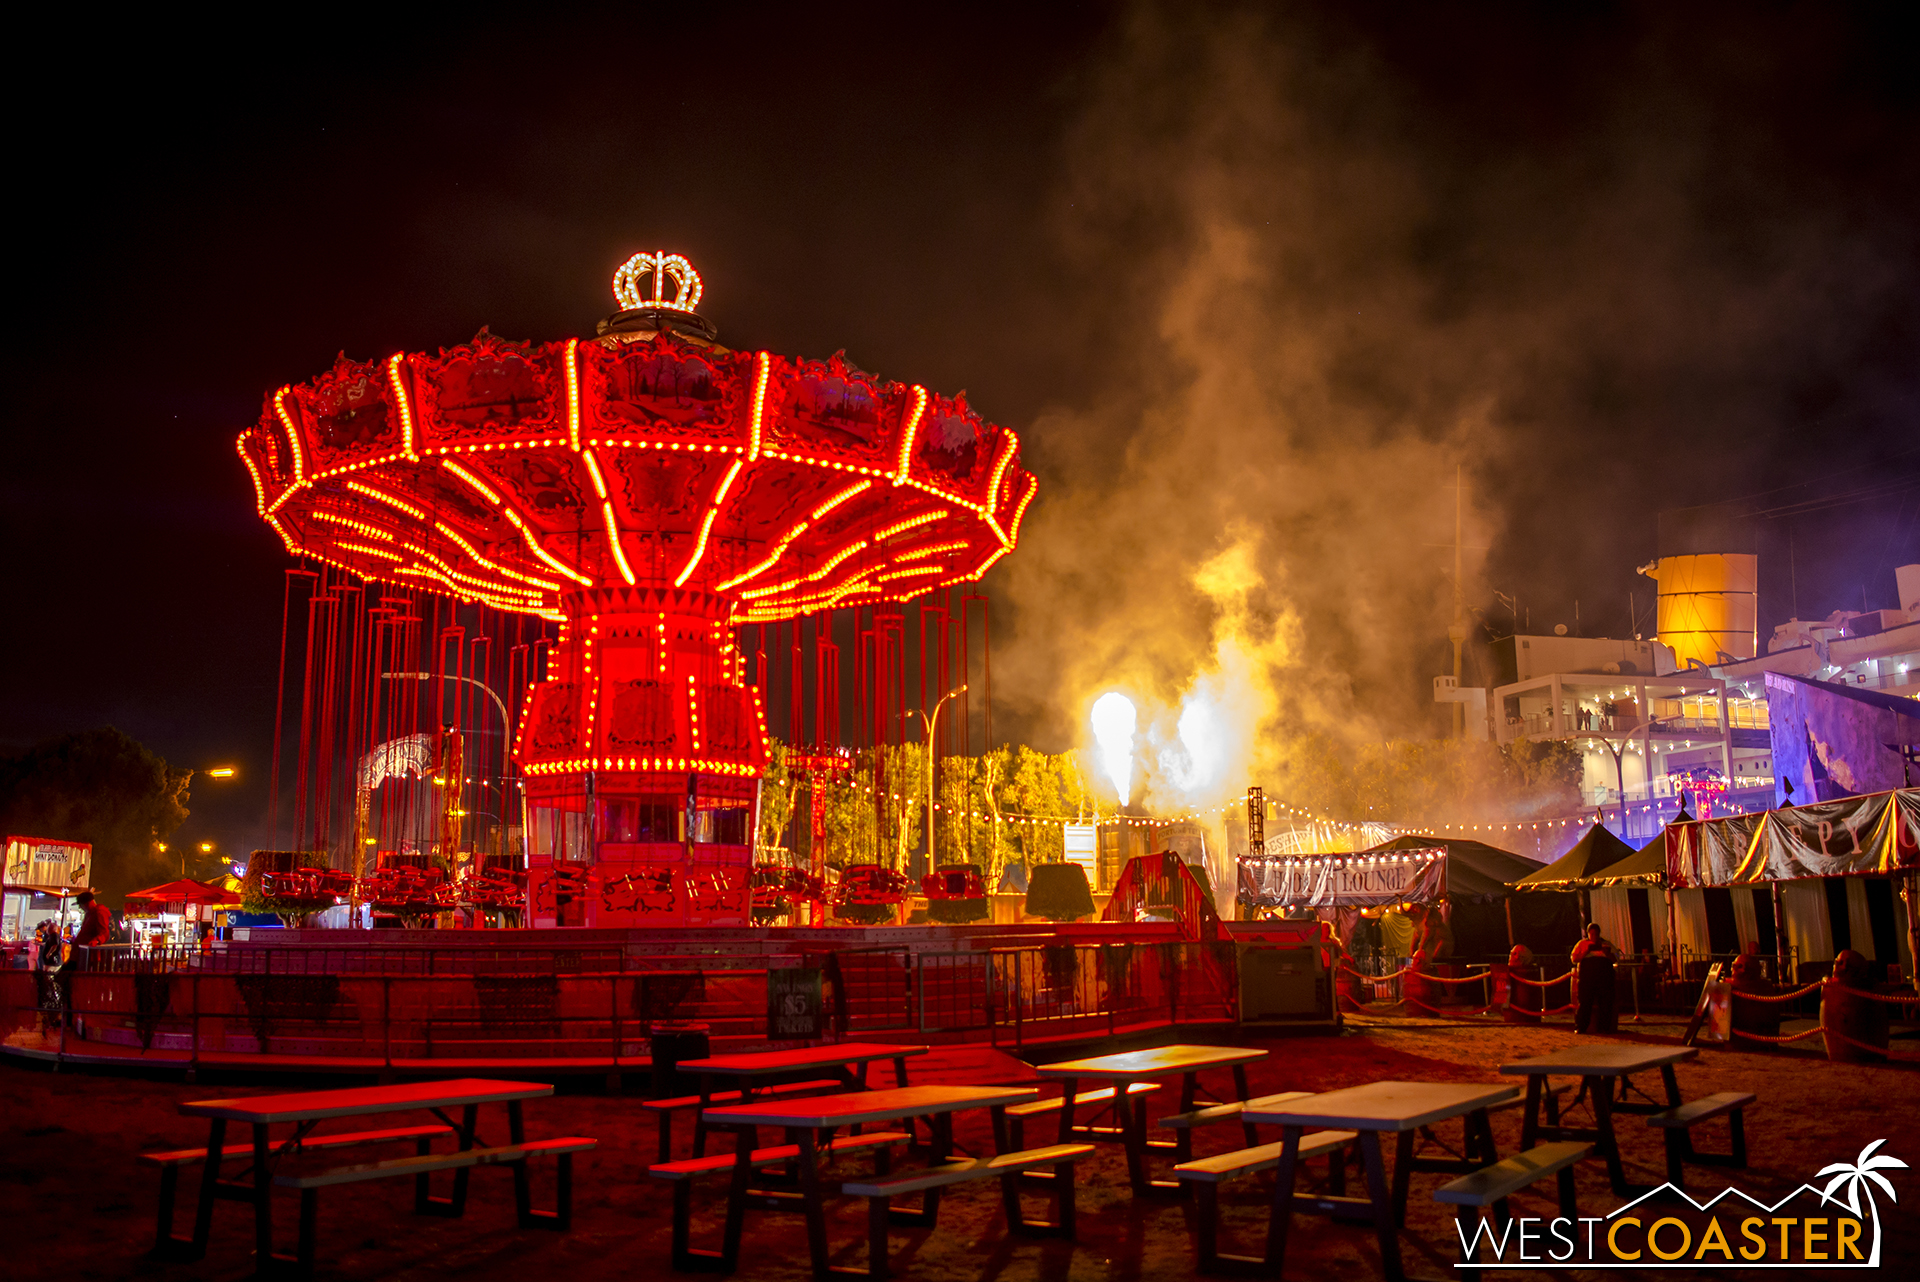 The most terrifying attraction at the event--Michael Jackson's actual Never Land Ranch swings!